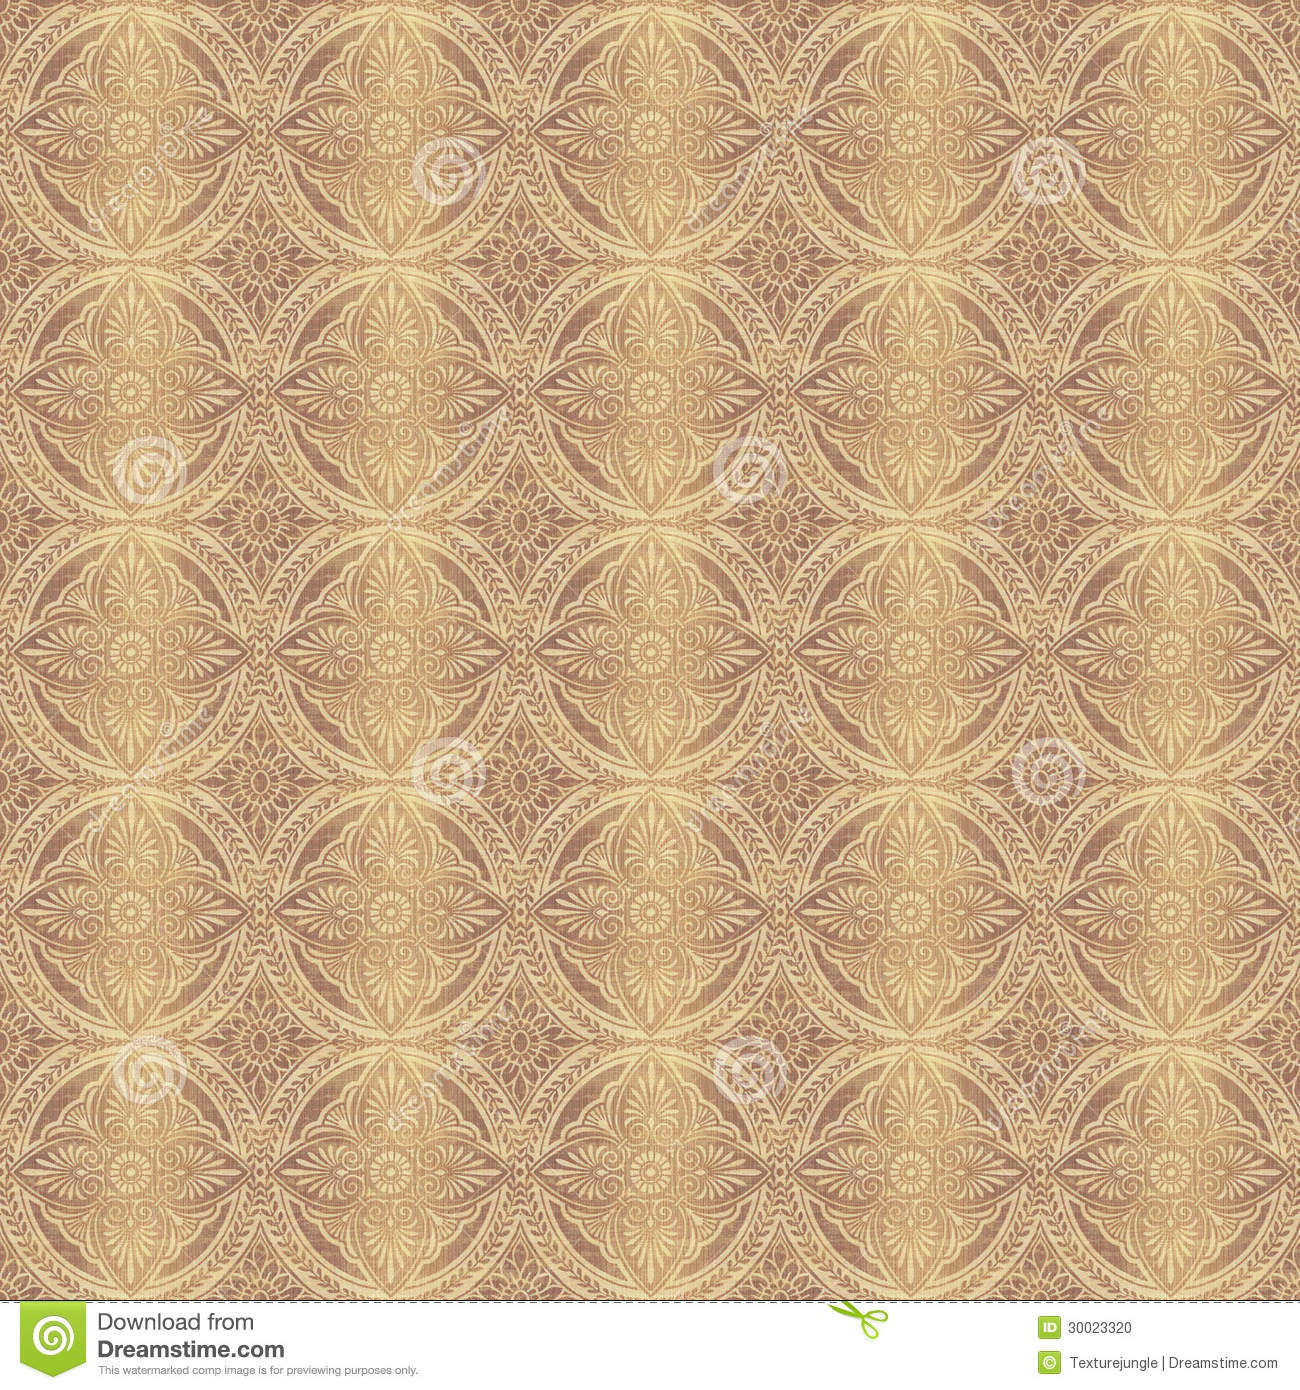 Victorian Wallpaper Pattern  Victorian Wallpaper Pattern Stock Photo Image  30023320. Seamless Victorian Wallpaper Texture